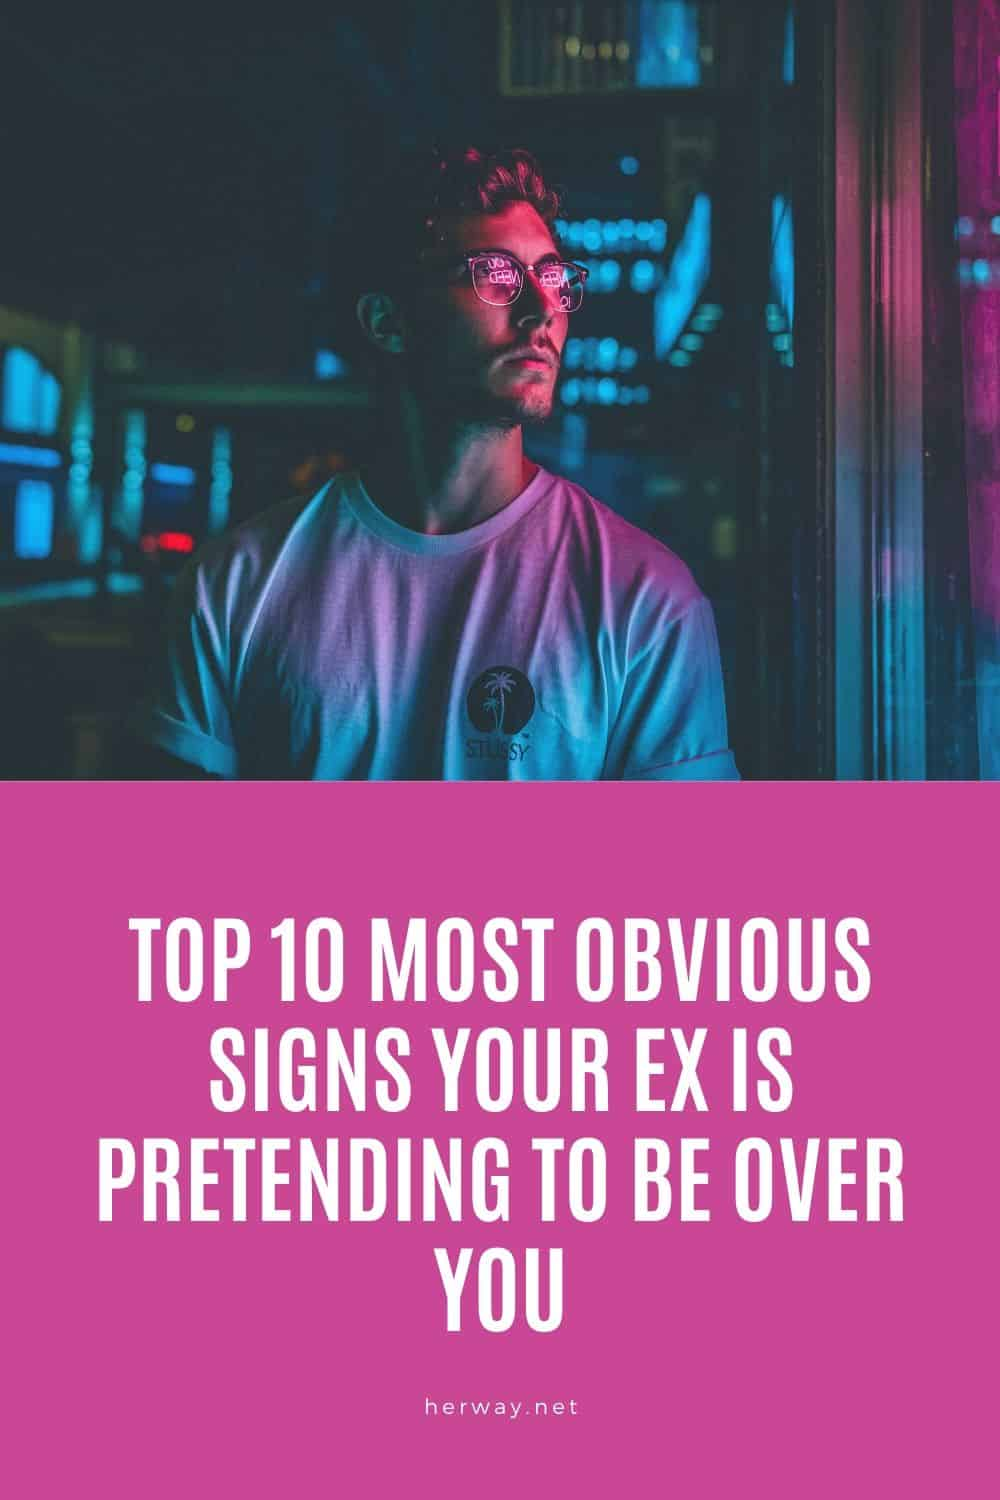 Top 10 Most Obvious Signs Your Ex Is Pretending To Be Over You